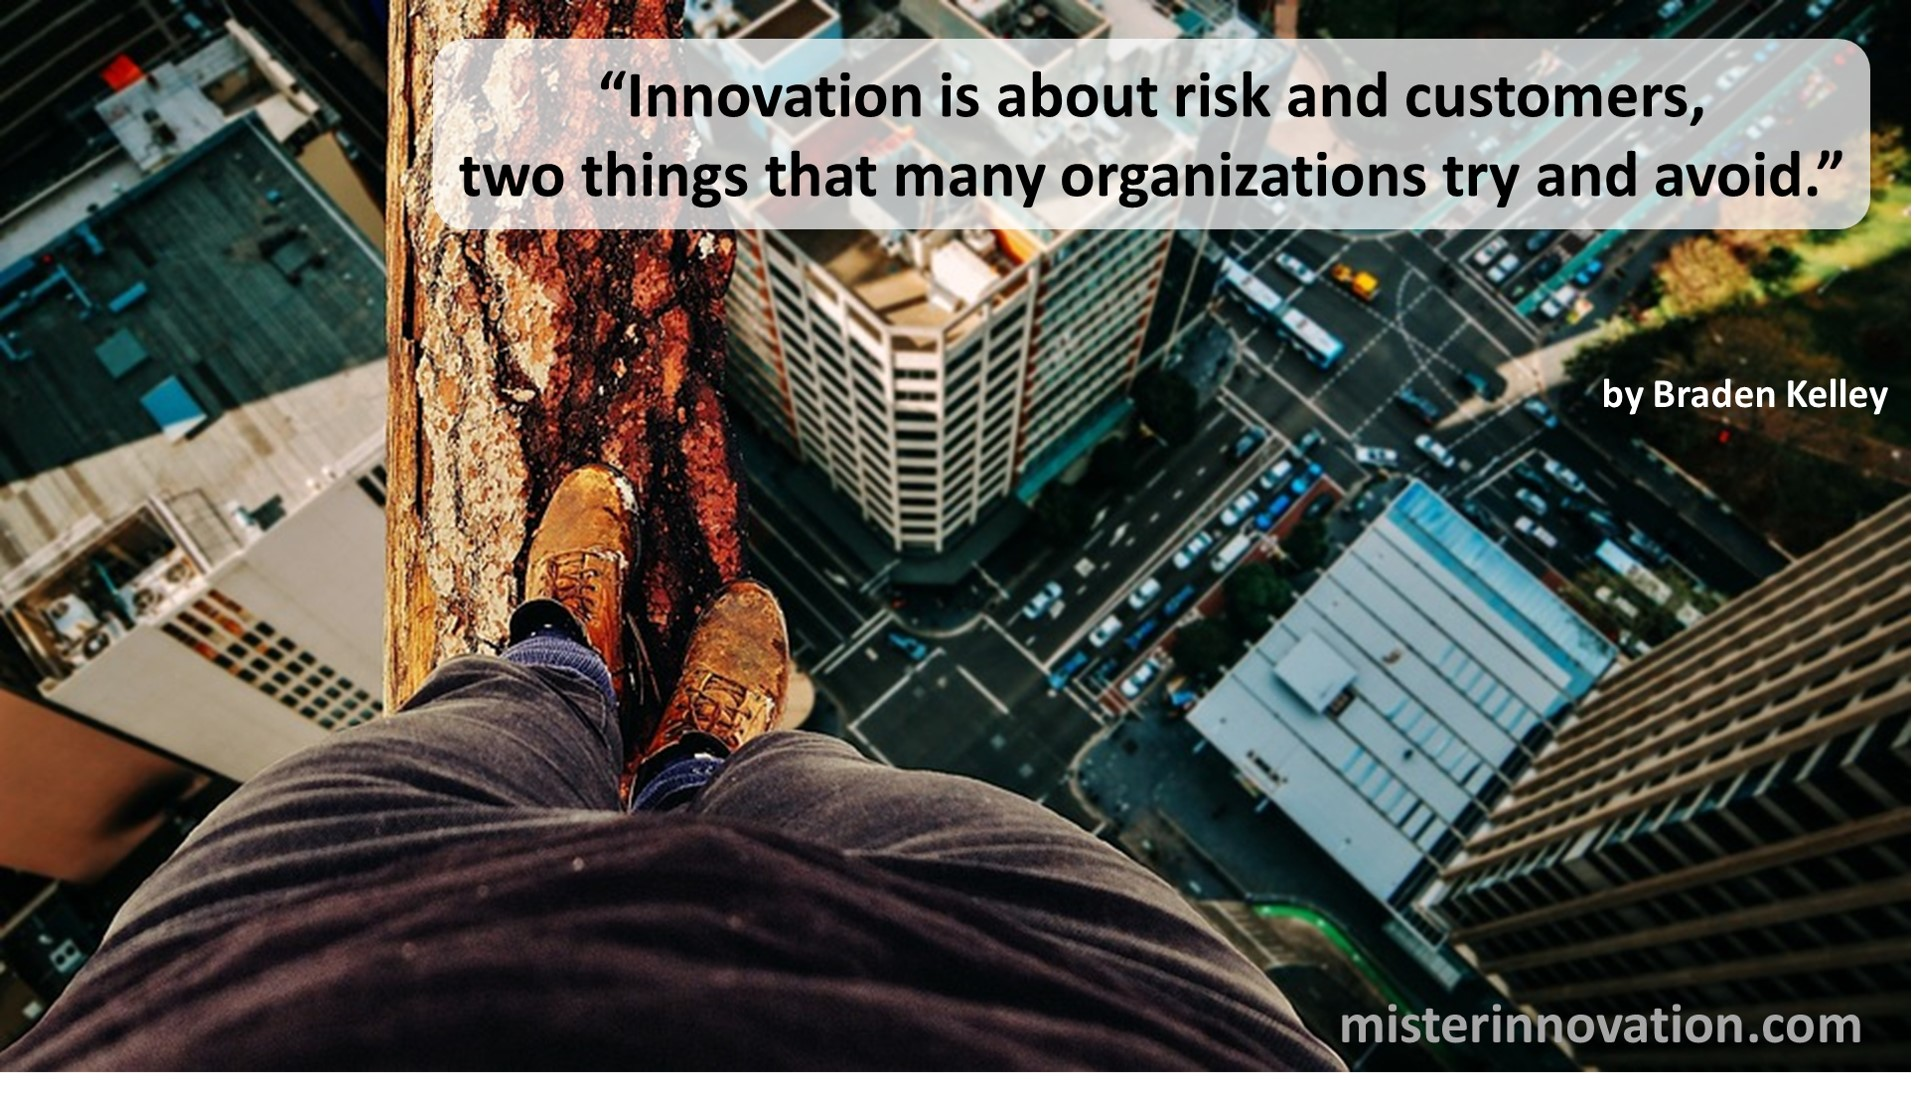 Innovation Risk and Customers Quote from Braden Kelley